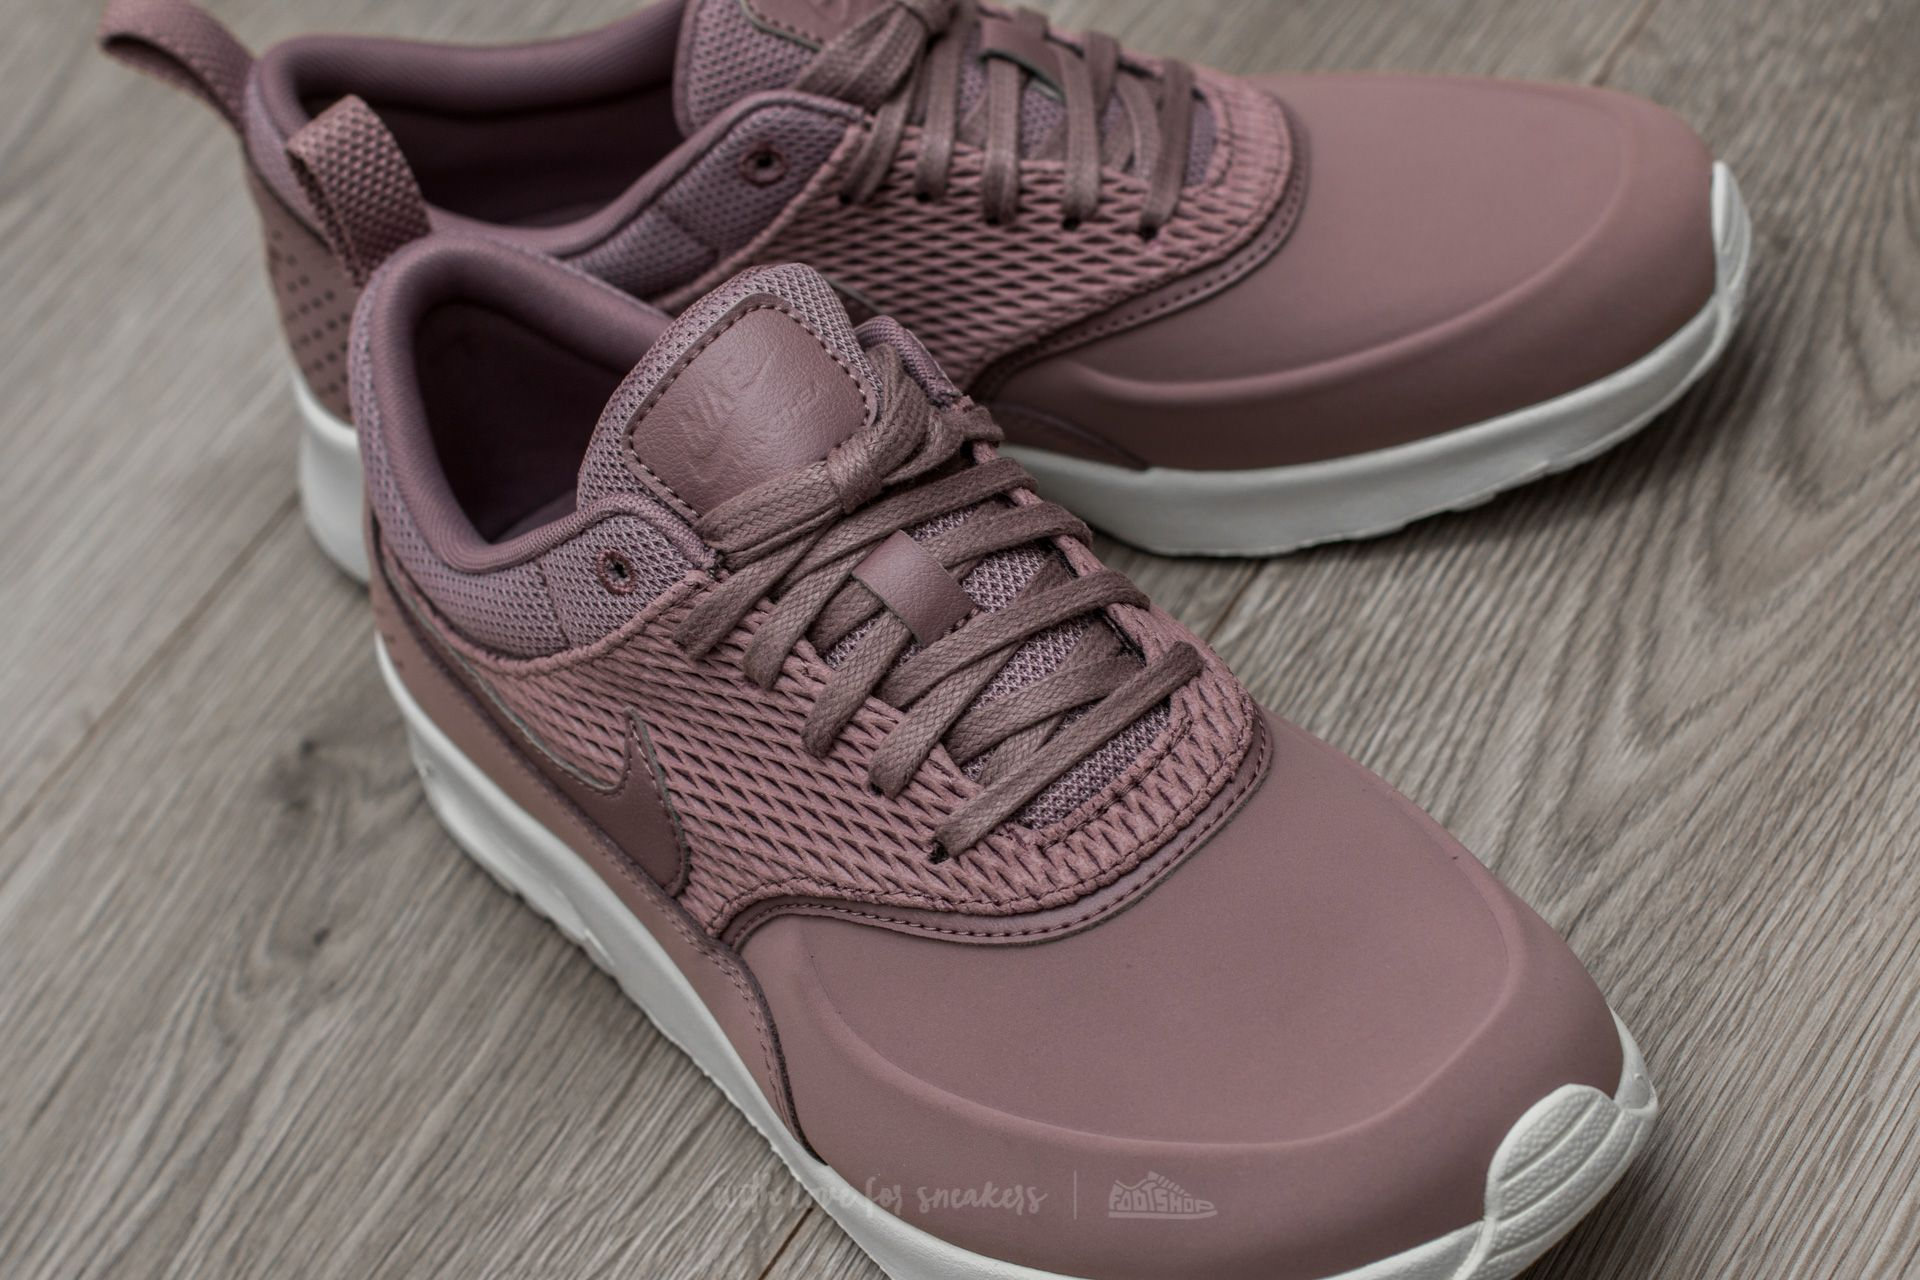 Wmns Air Max Thea Premium Leather Taupe Grey Taupe Grey sail